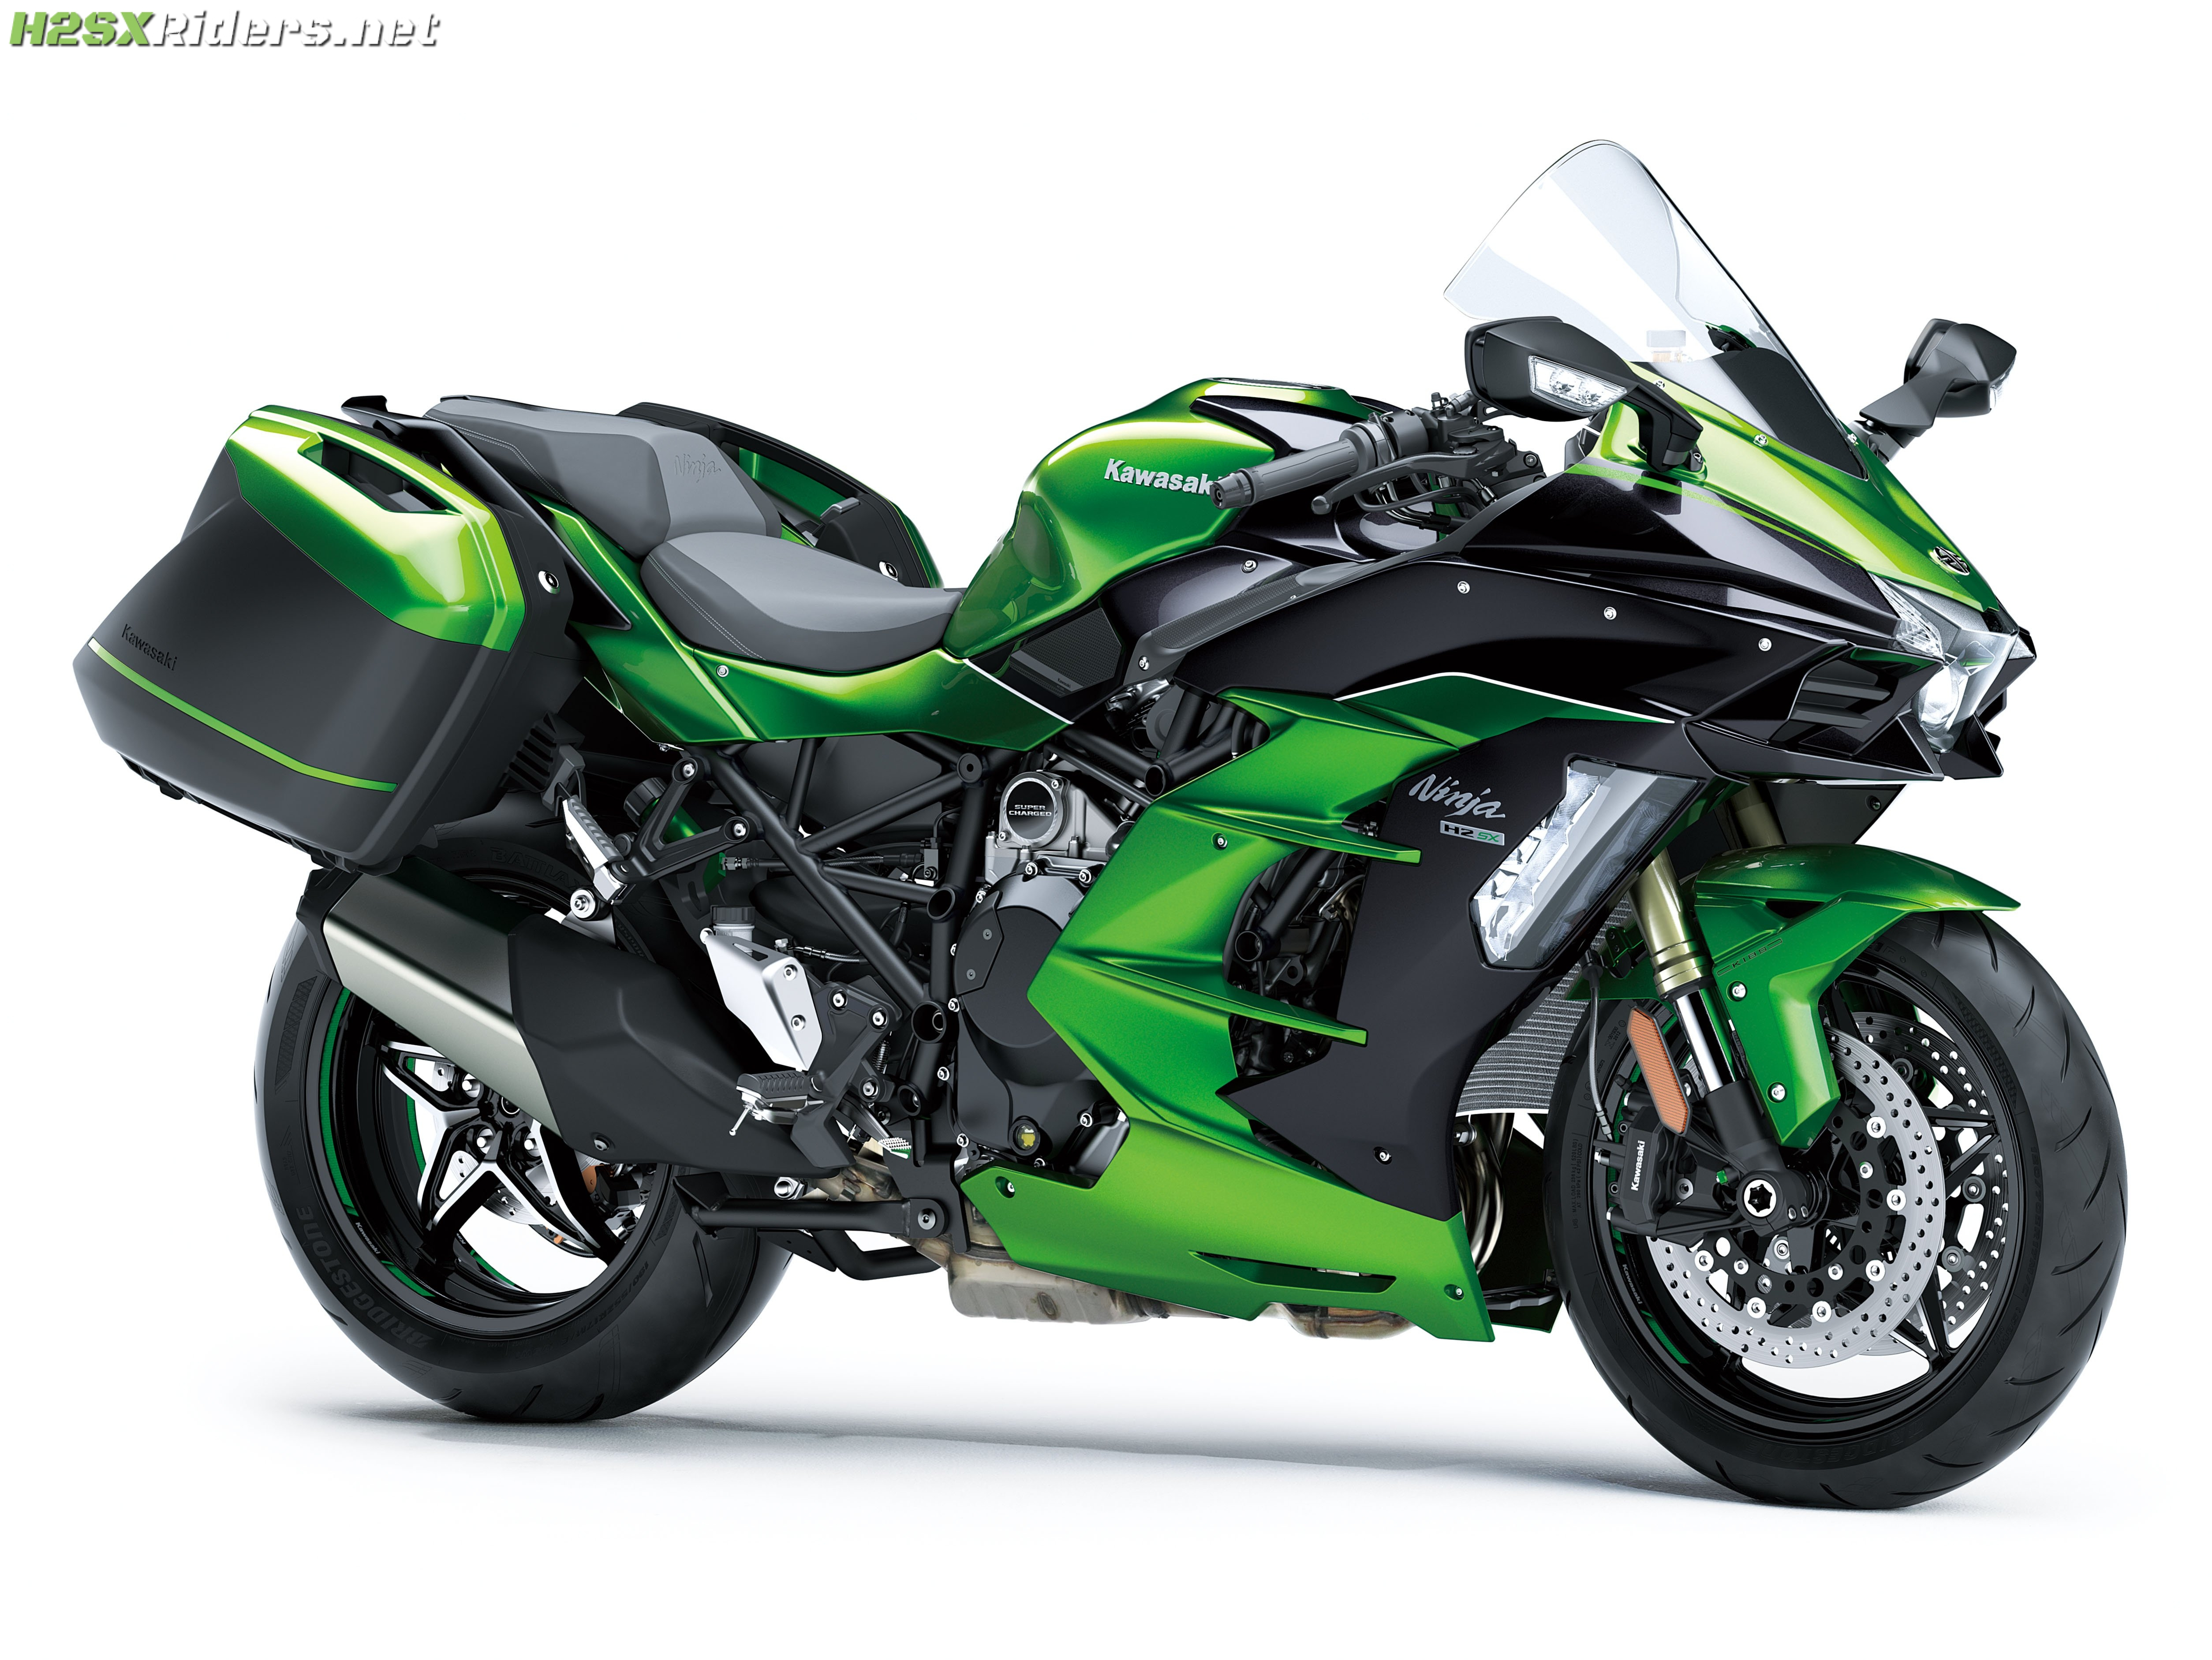 Sport-Touring Net - Kawi supercharged sport-tourer coming in 2018